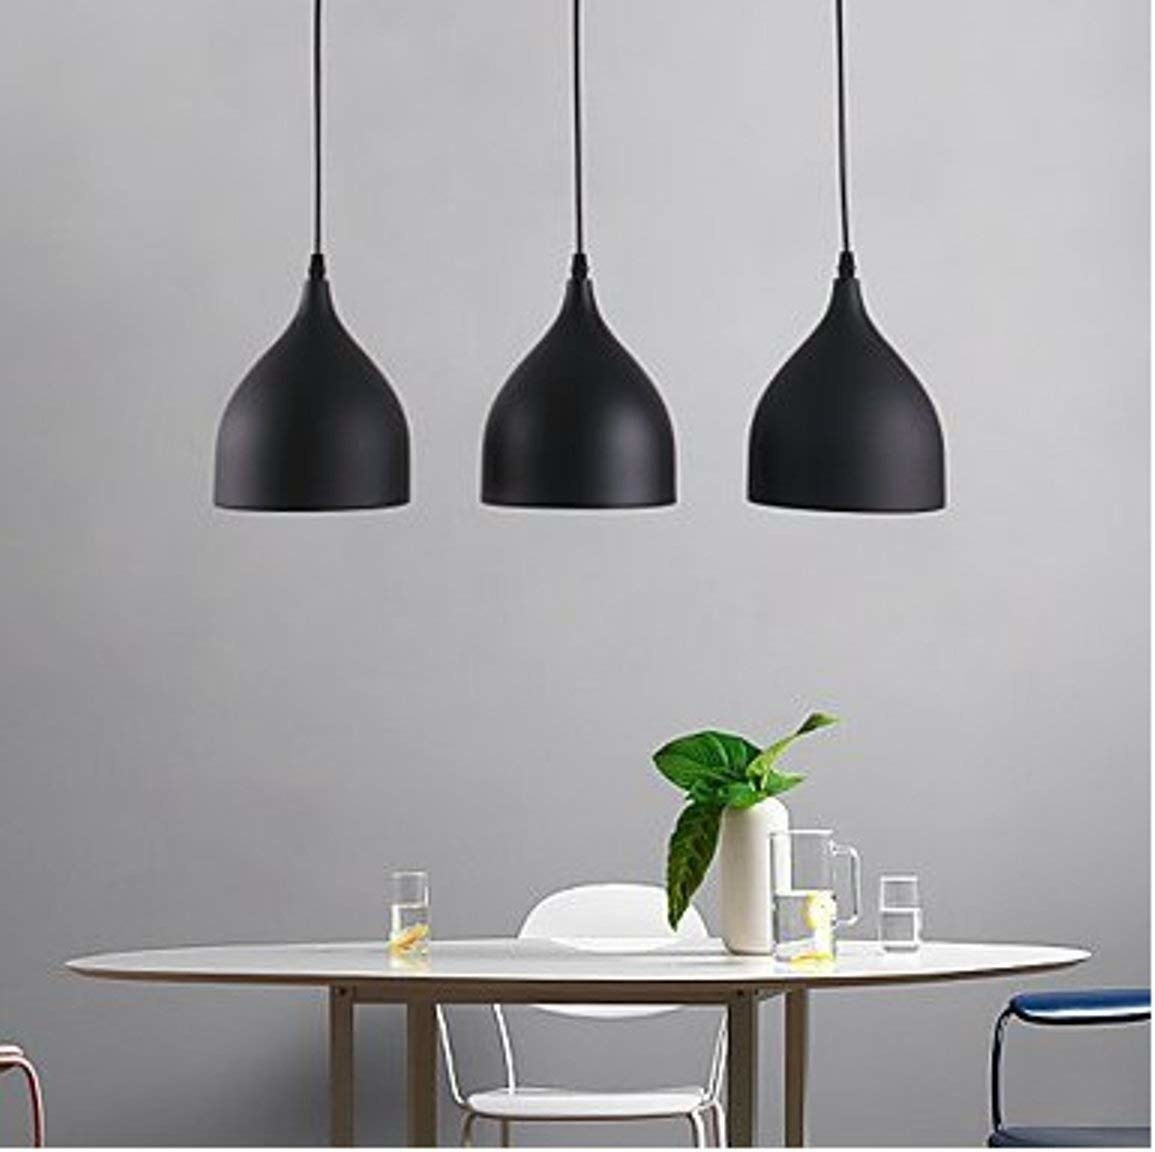 3 black ceiling lights over a table